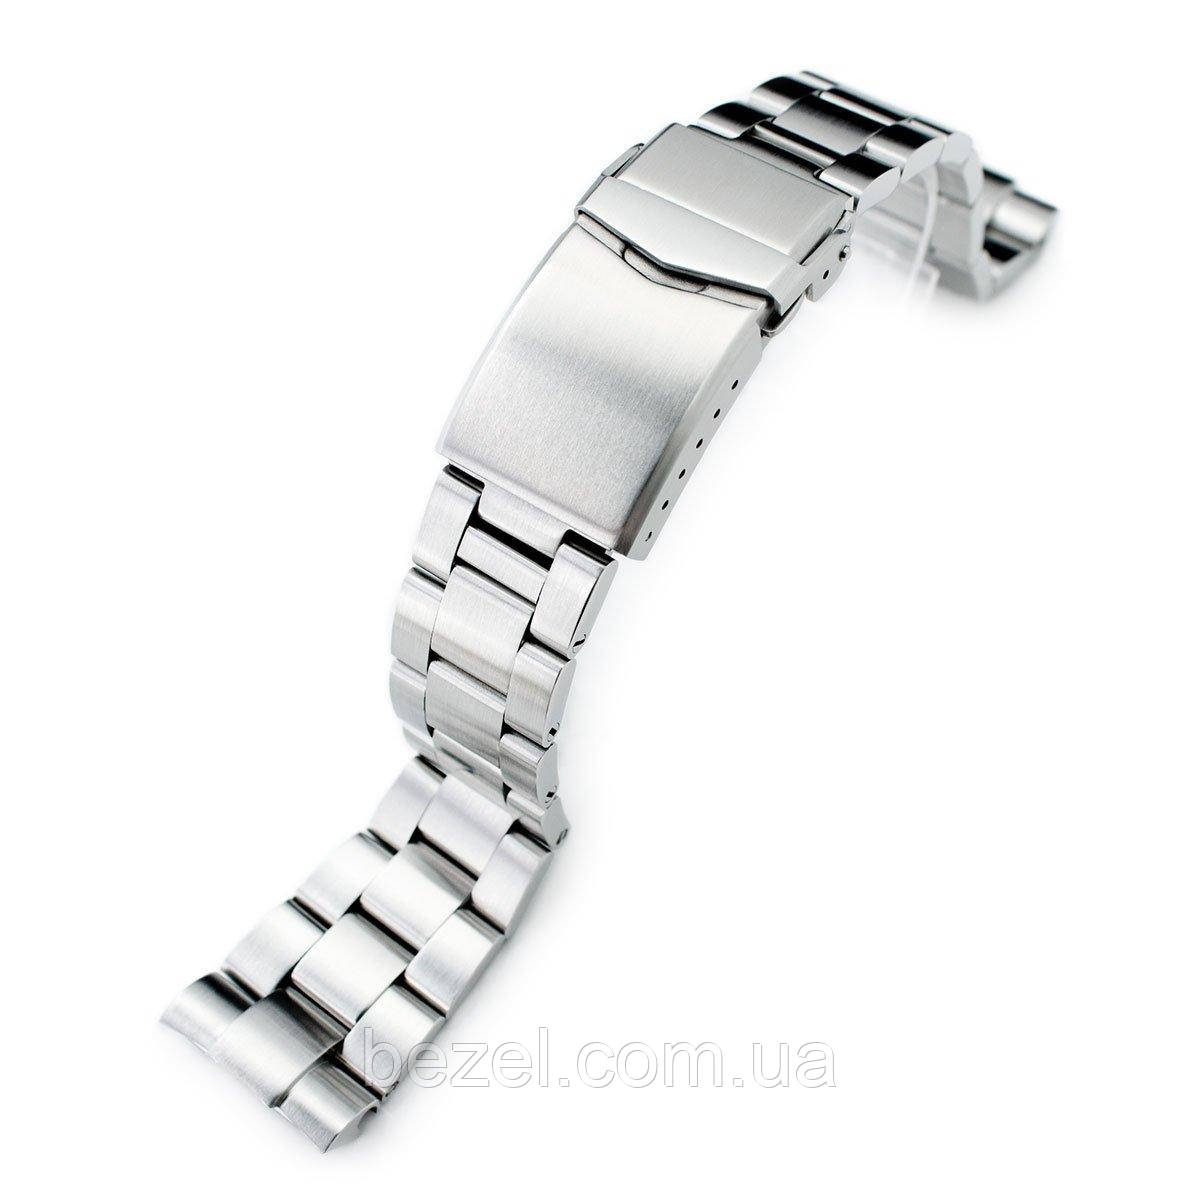 22mm Super 3D Oyster 316L Stainless Steel Watch Bracelet for Seiko New Turtles SRP777, V-Clasp Brushed